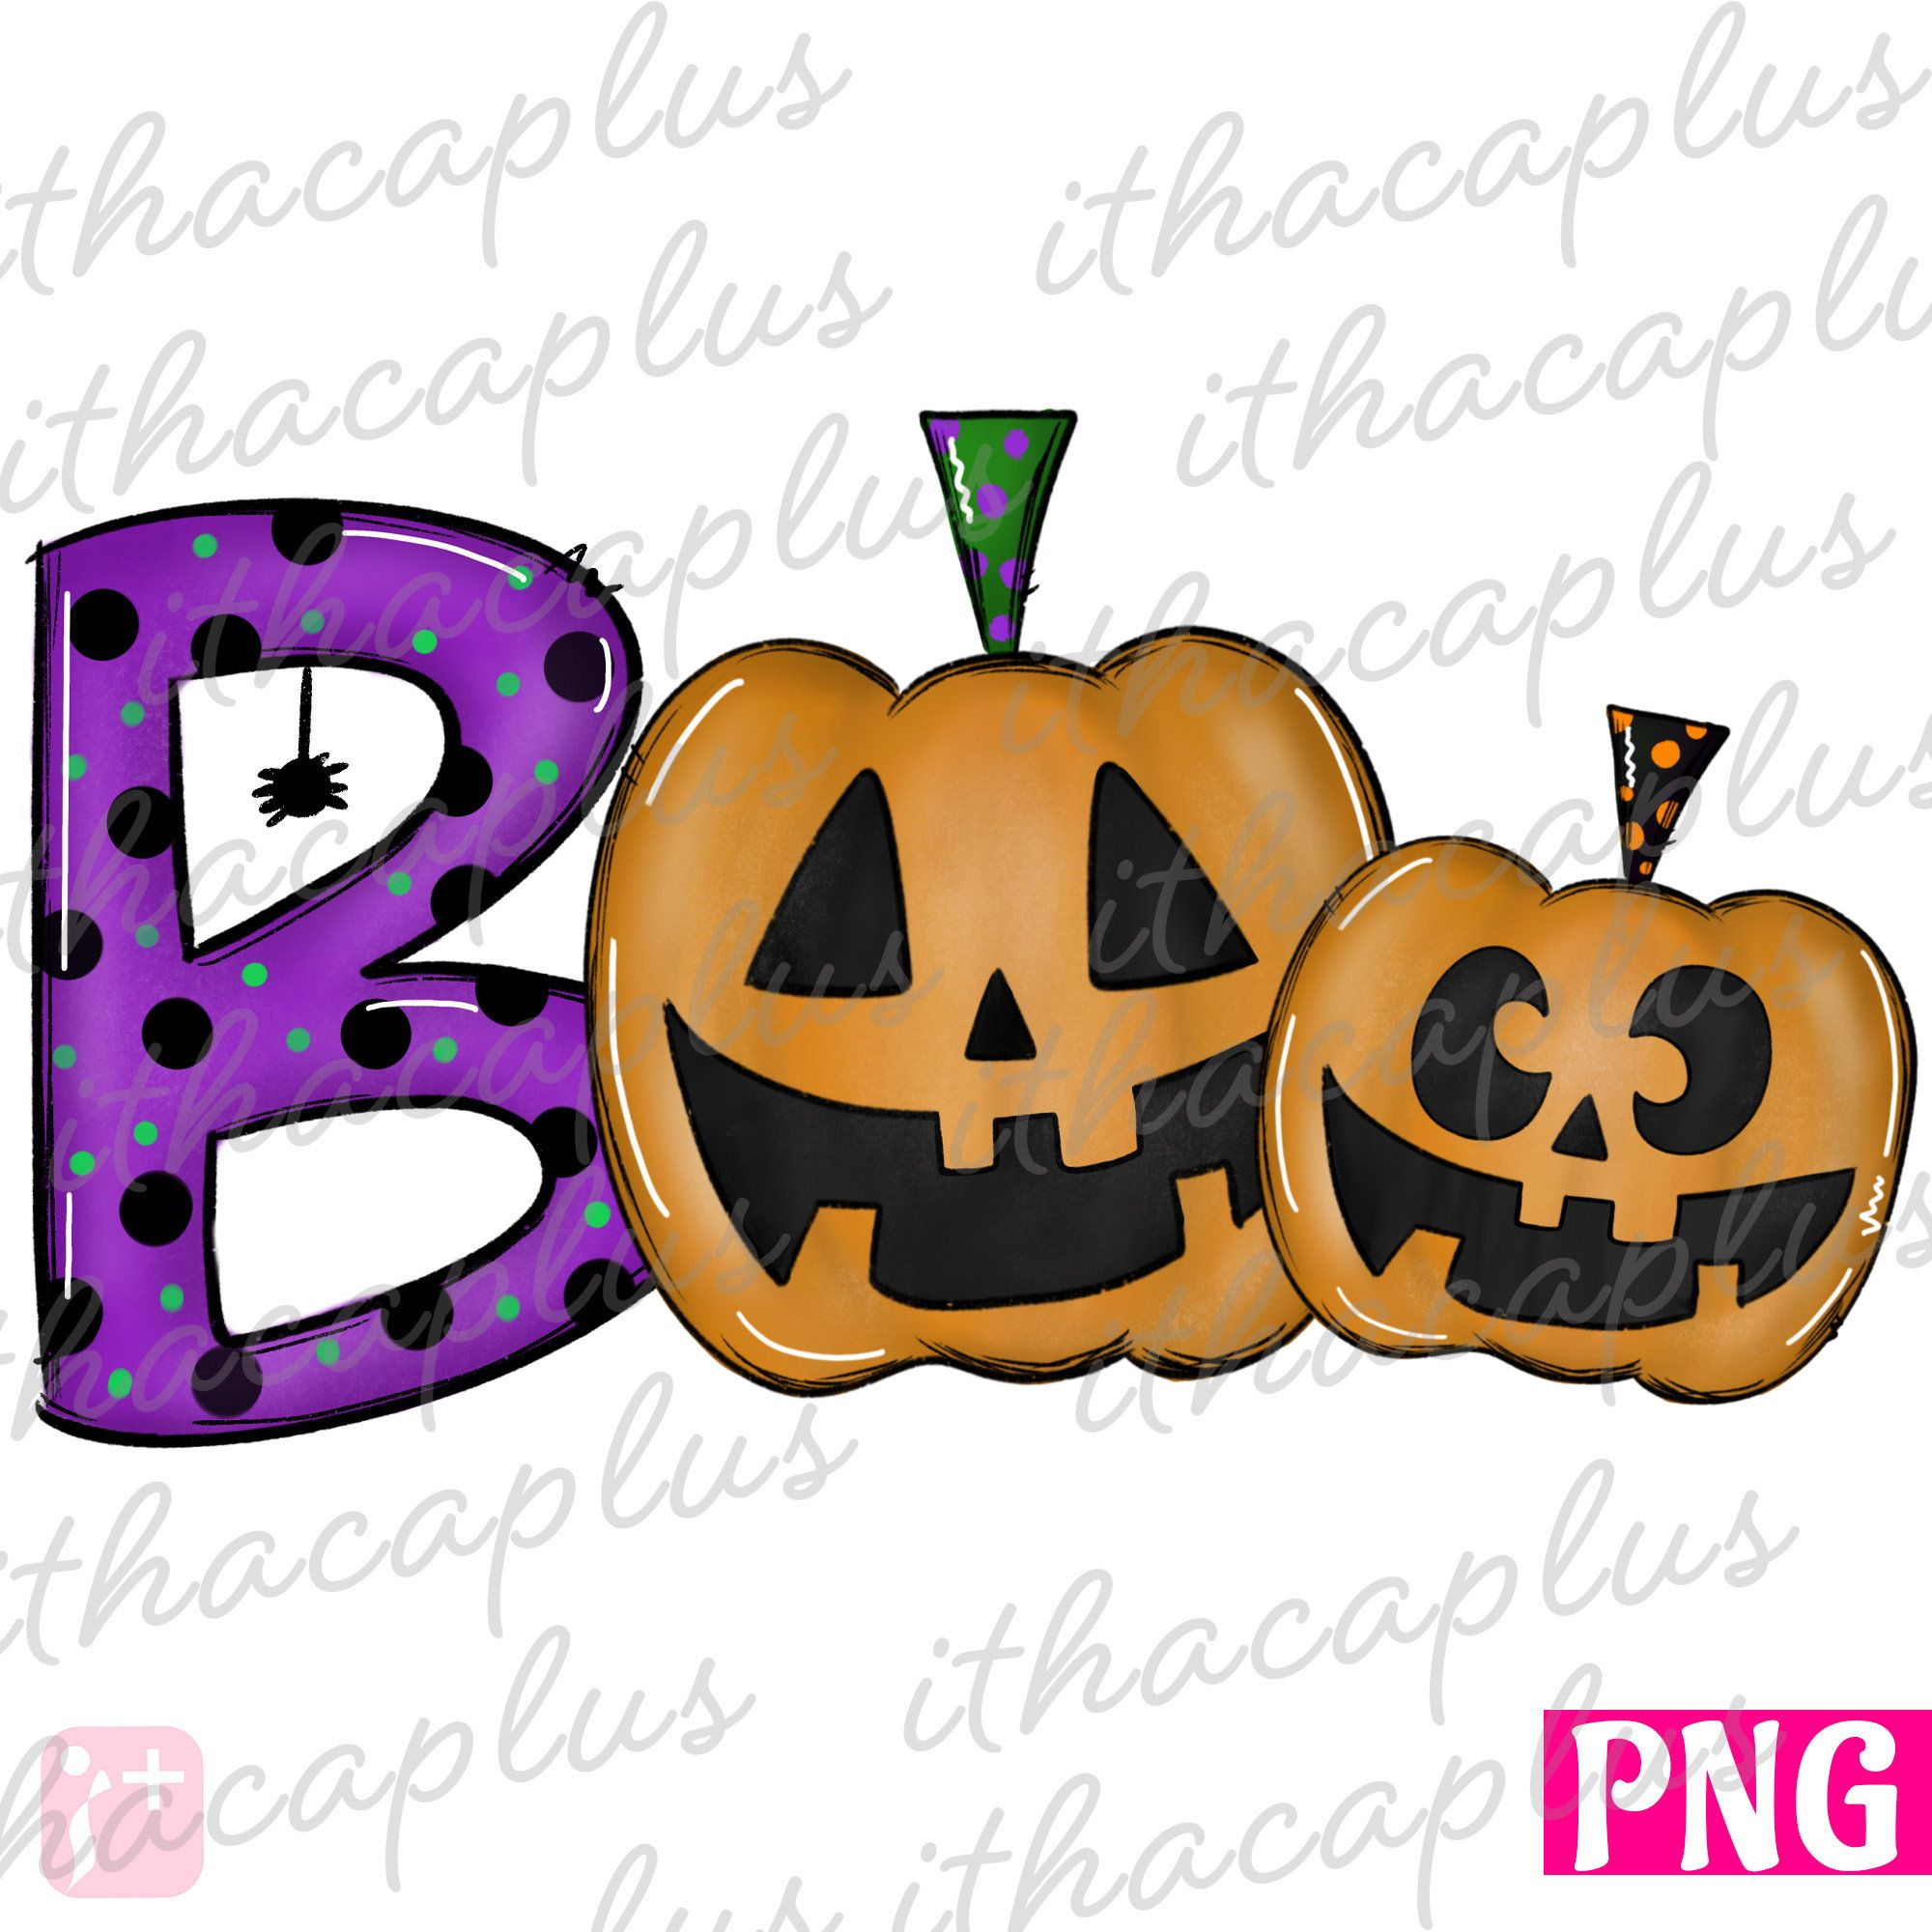 Boo Sublimation Halloween Png Boo Png Design Halloween Boo Etsy In 2021 Pumpkin Drawing Halloween Crafts Halloween Drawings